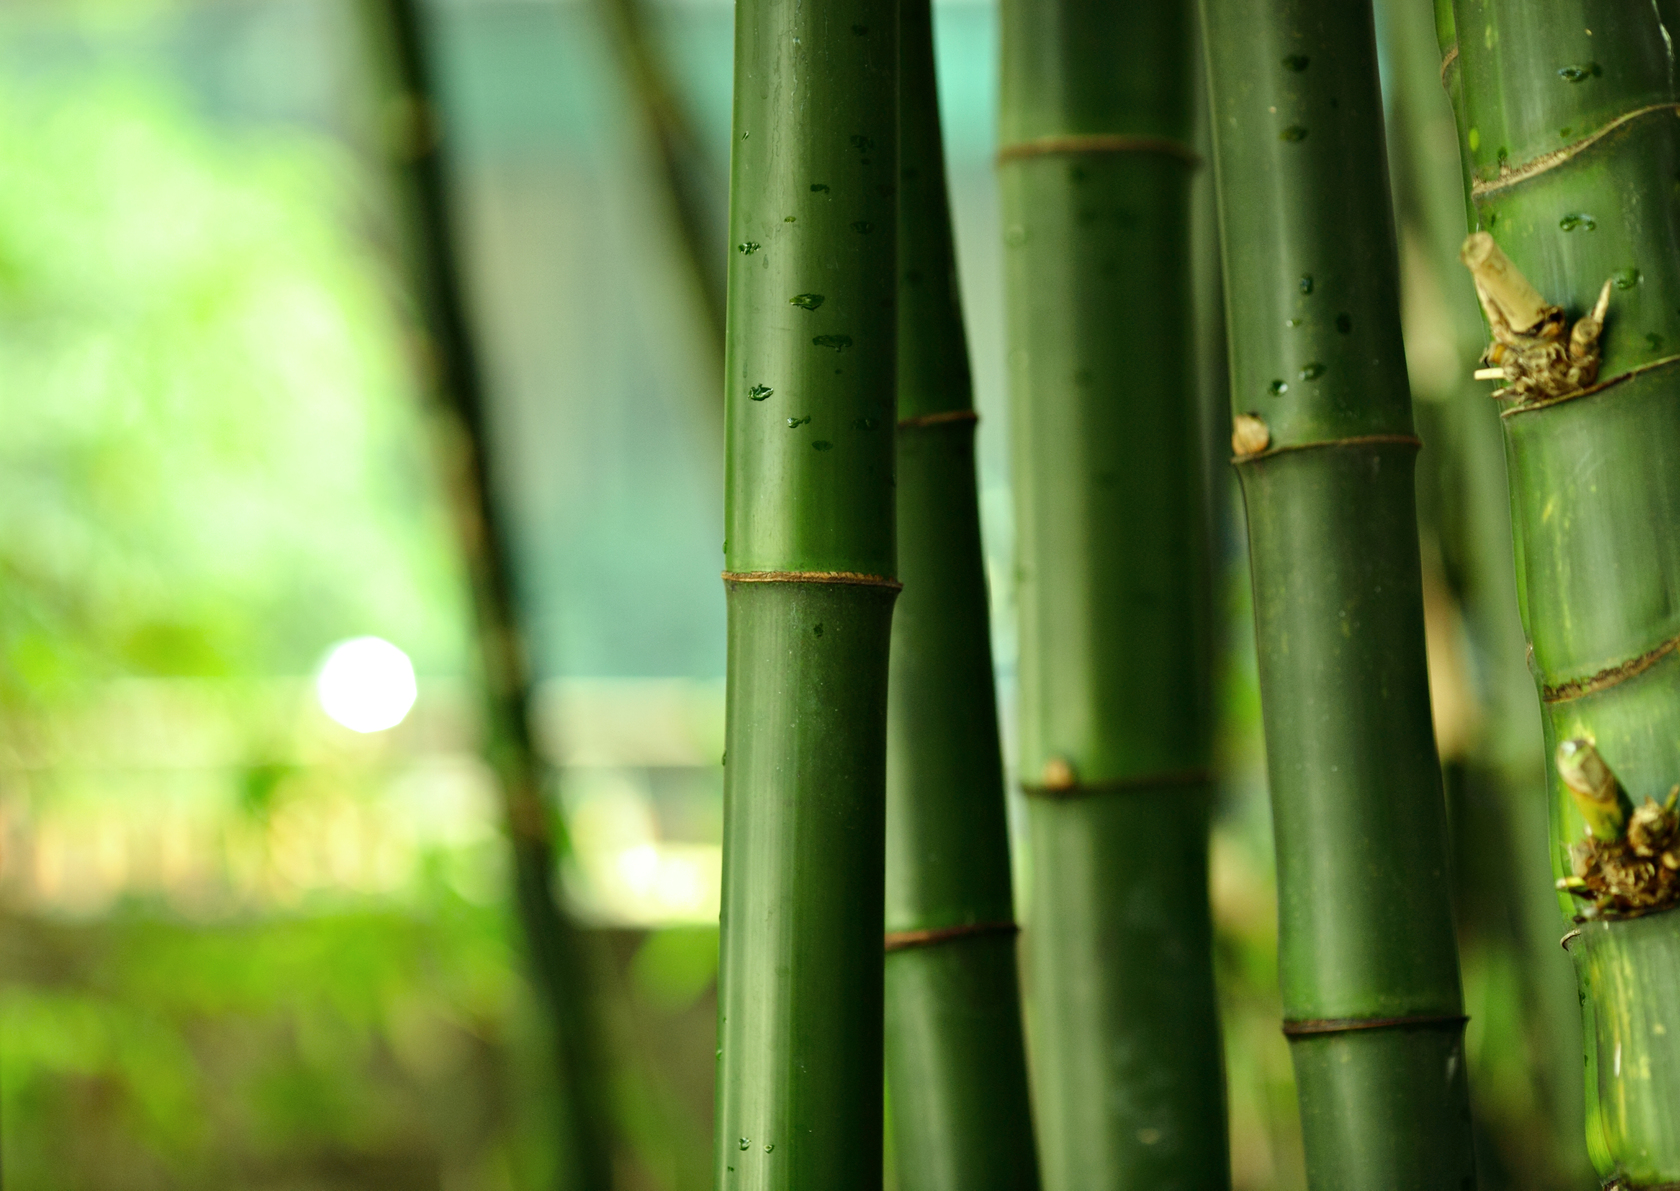 Bamboo Extract